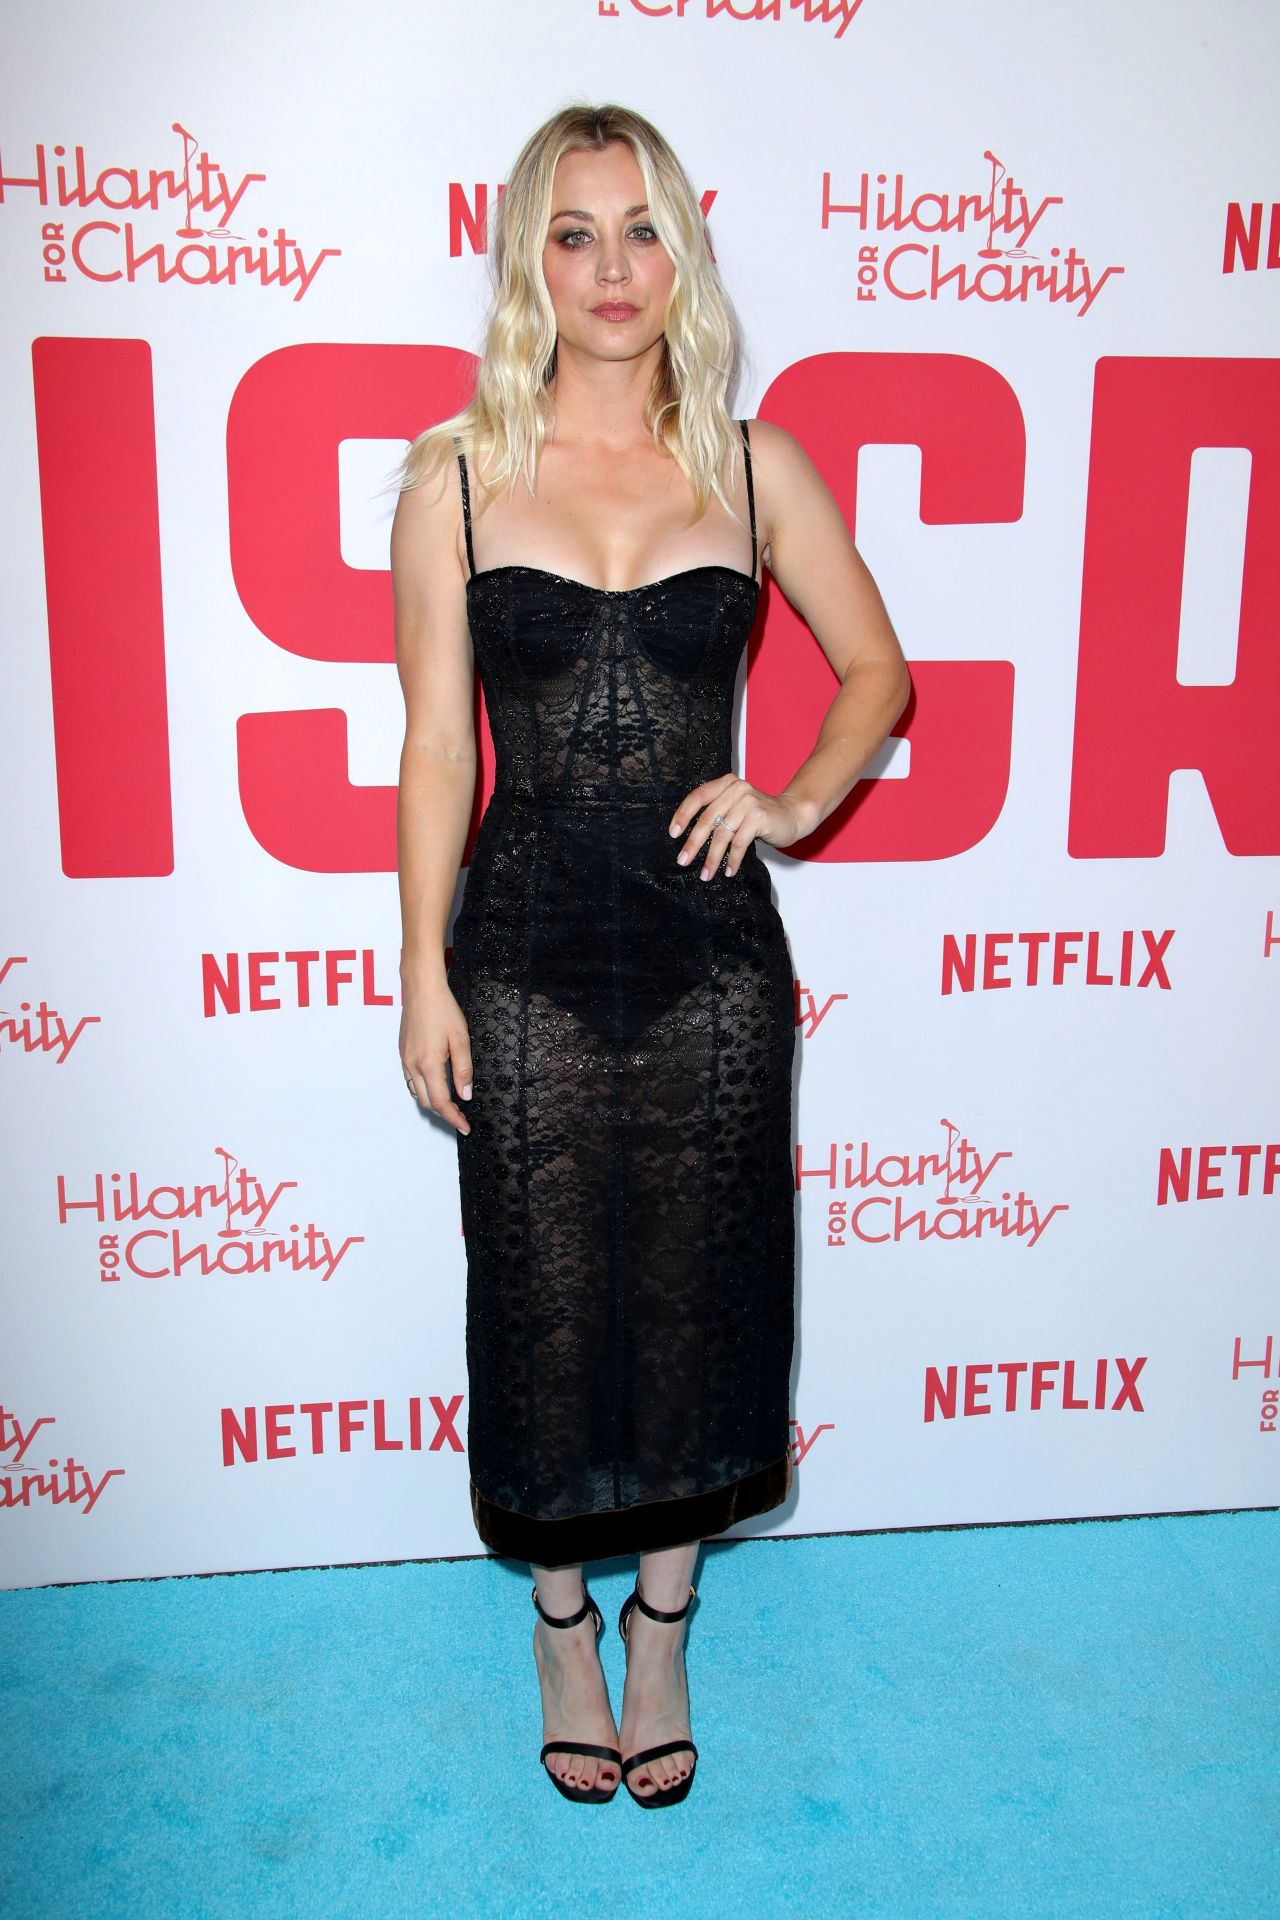 http://celebmafia.com/wp-content/uploads/2018/03/kaley-cuoco-hilarity-for-charity-s-variety-show-in-la-8.jpg